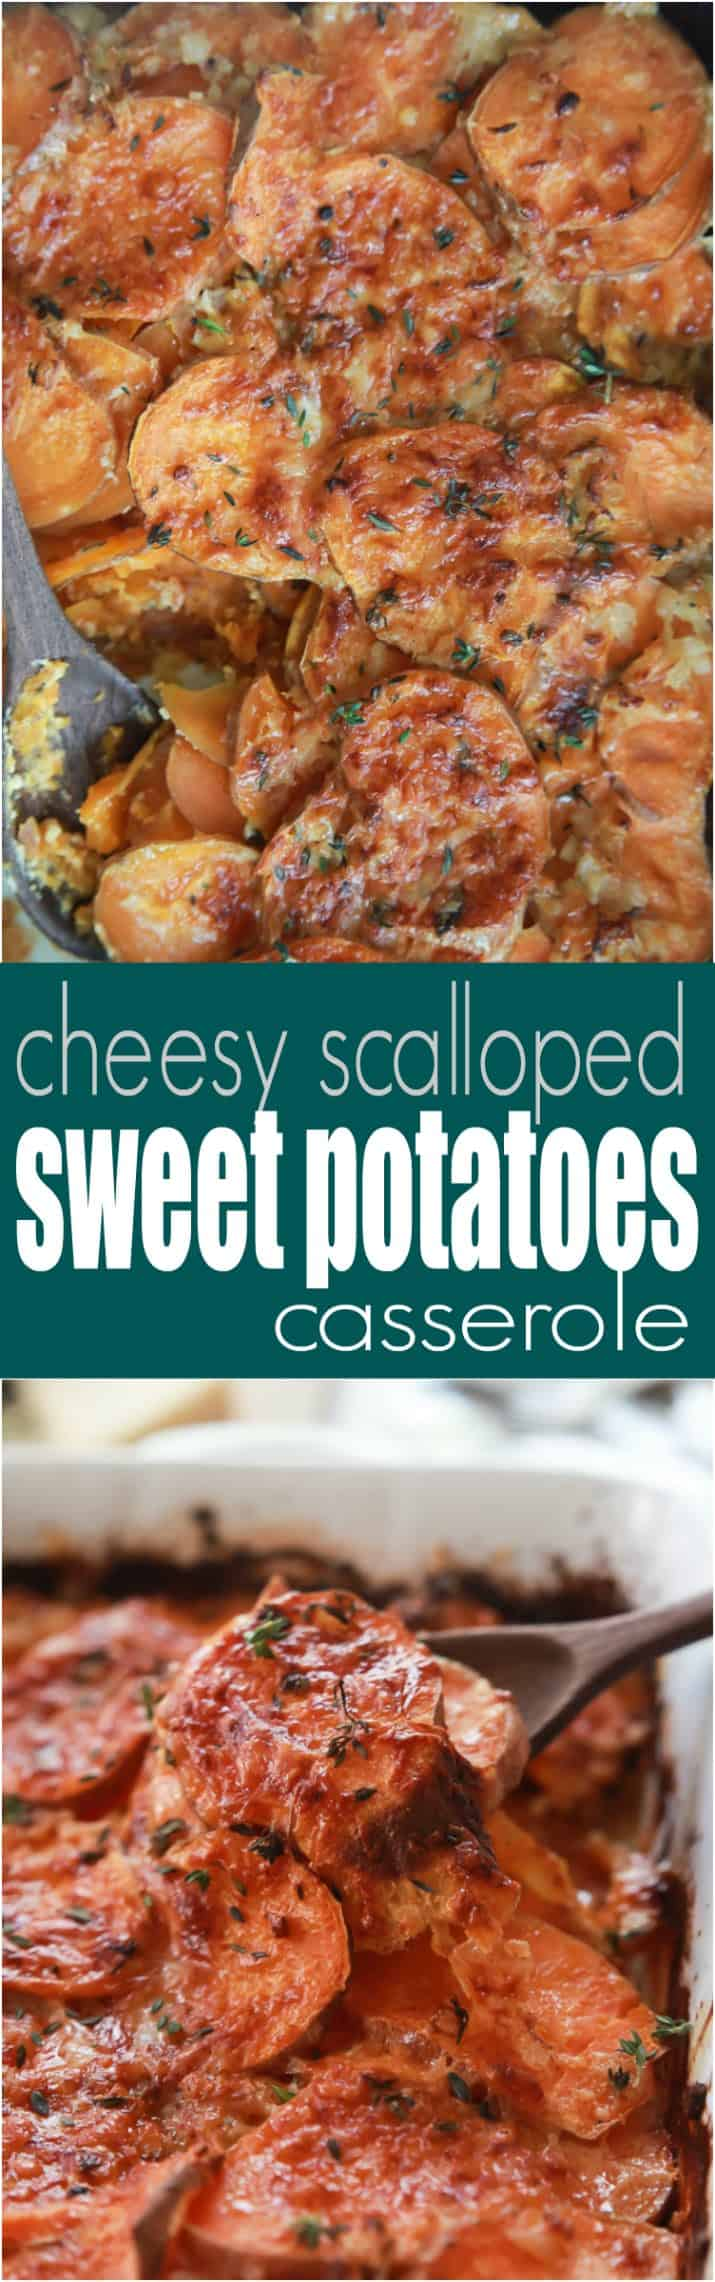 Easy Cheesy Scalloped Sweet Potatoes - the ultimate side dish made healthier but keeping the same comforting flavor you love! Delicious!| joyfulhealthyeats.com #glutenfree